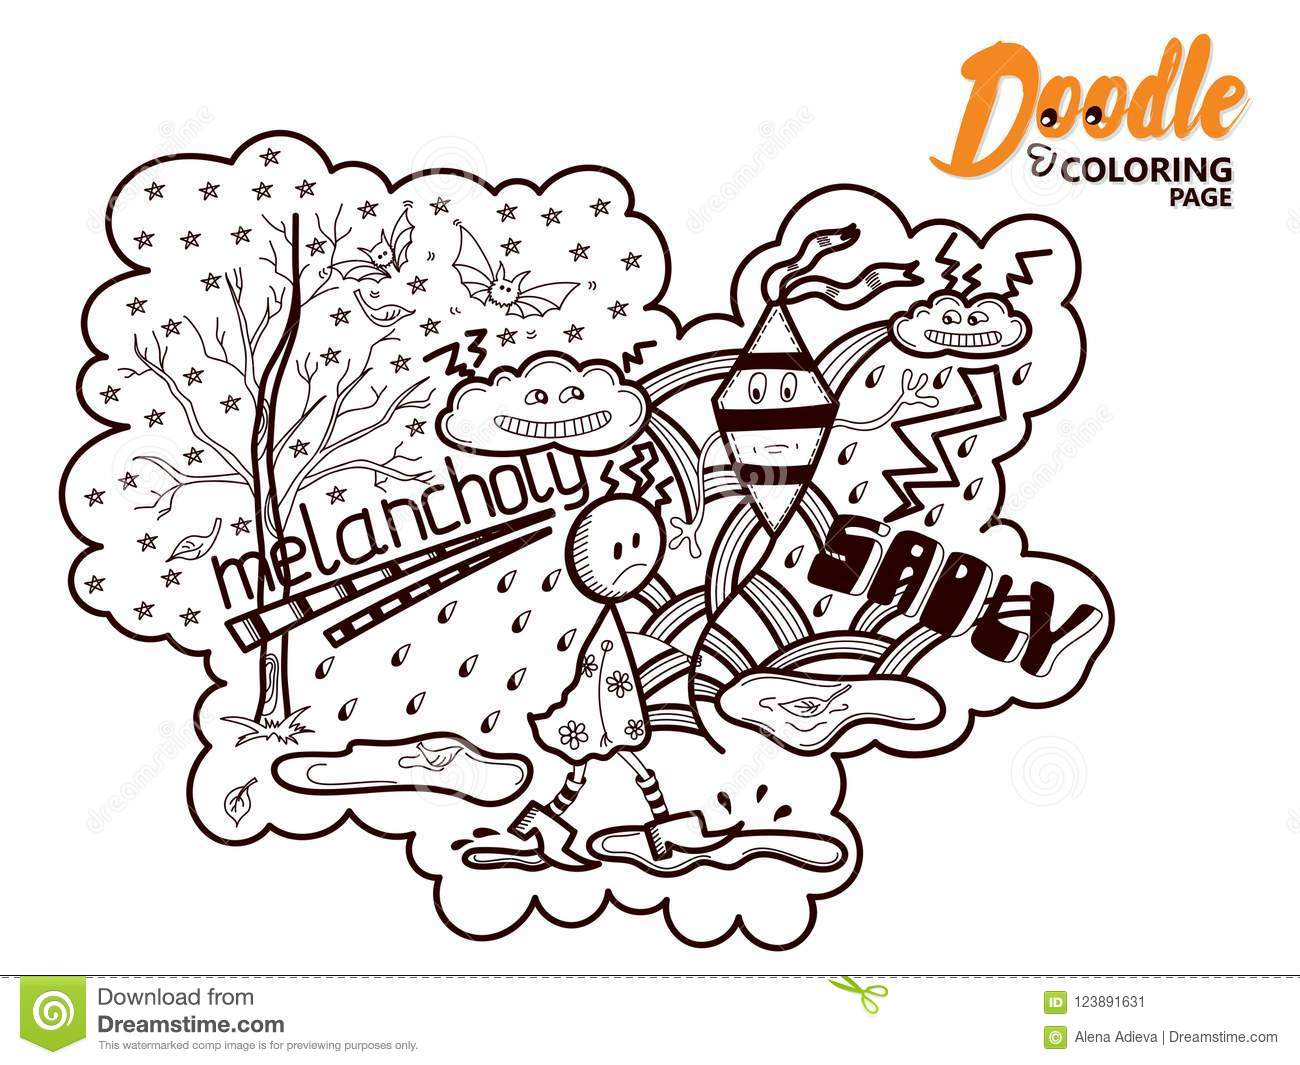 Coloring Book Doodle Melancholy Stock Vector Illustration